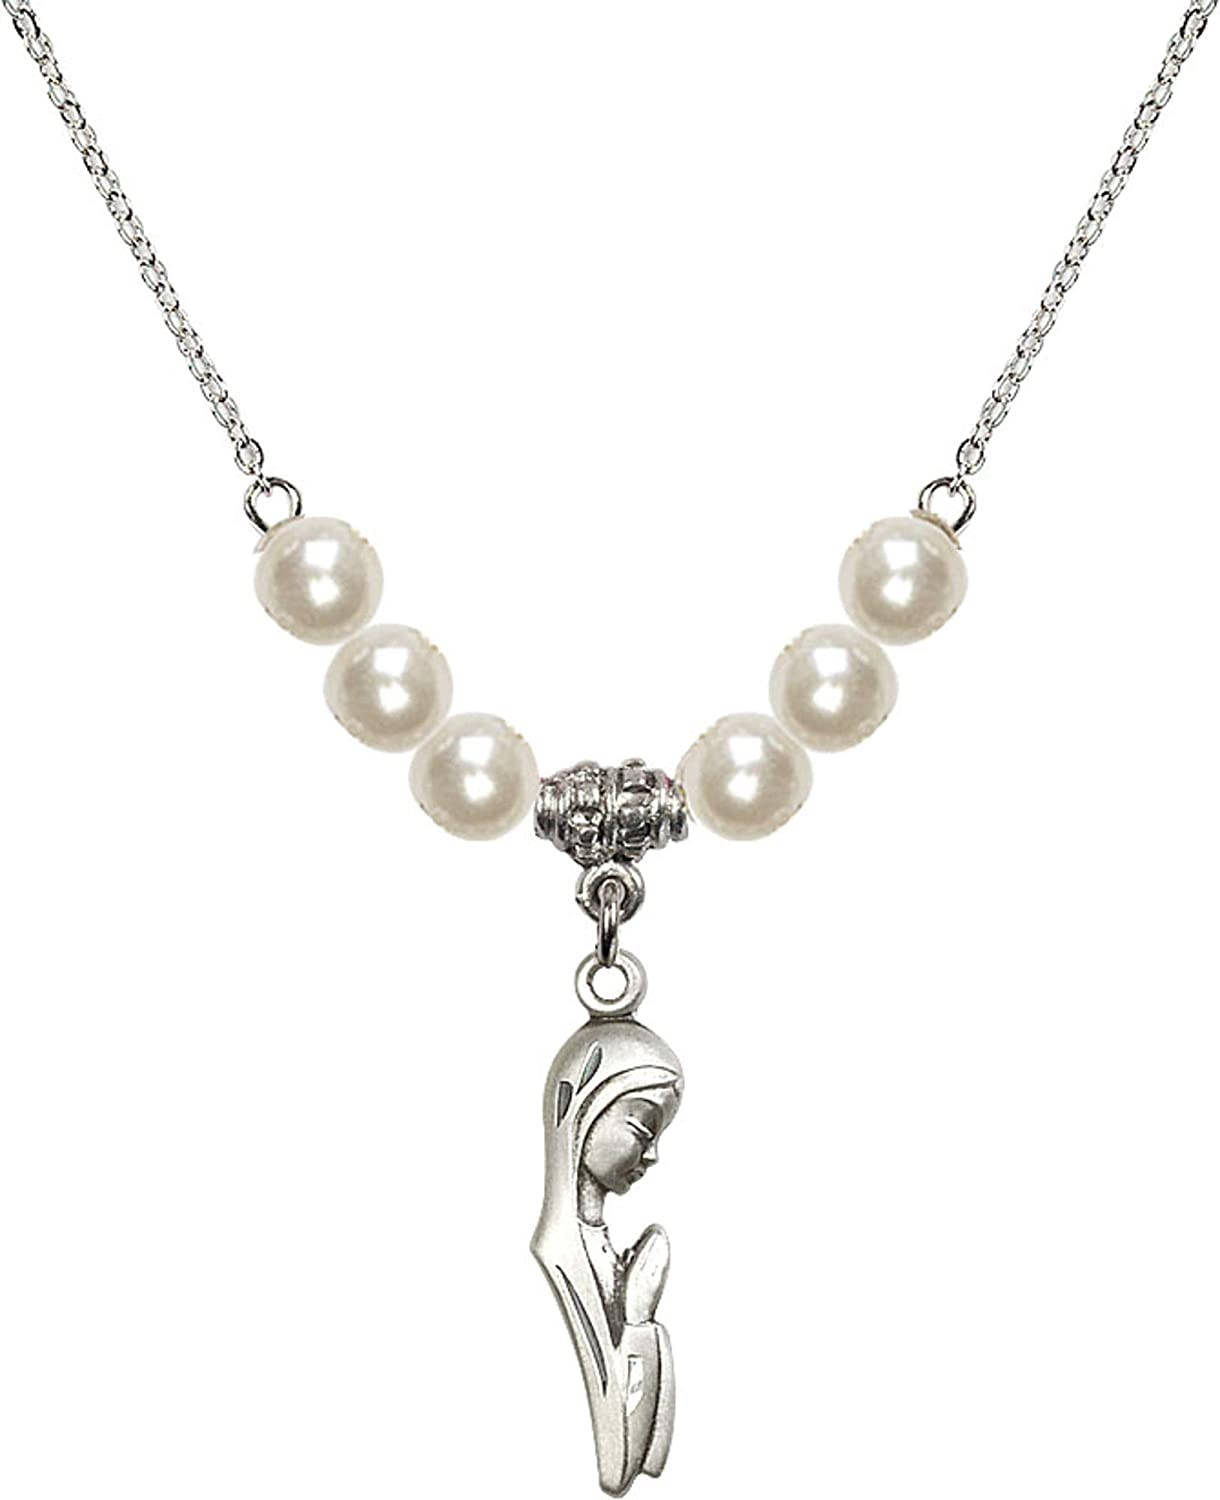 Bonyak Jewelry 18 Inch Rhodium Plated Necklace w// 6mm Faux-Pearl Beads and Madonna Charm